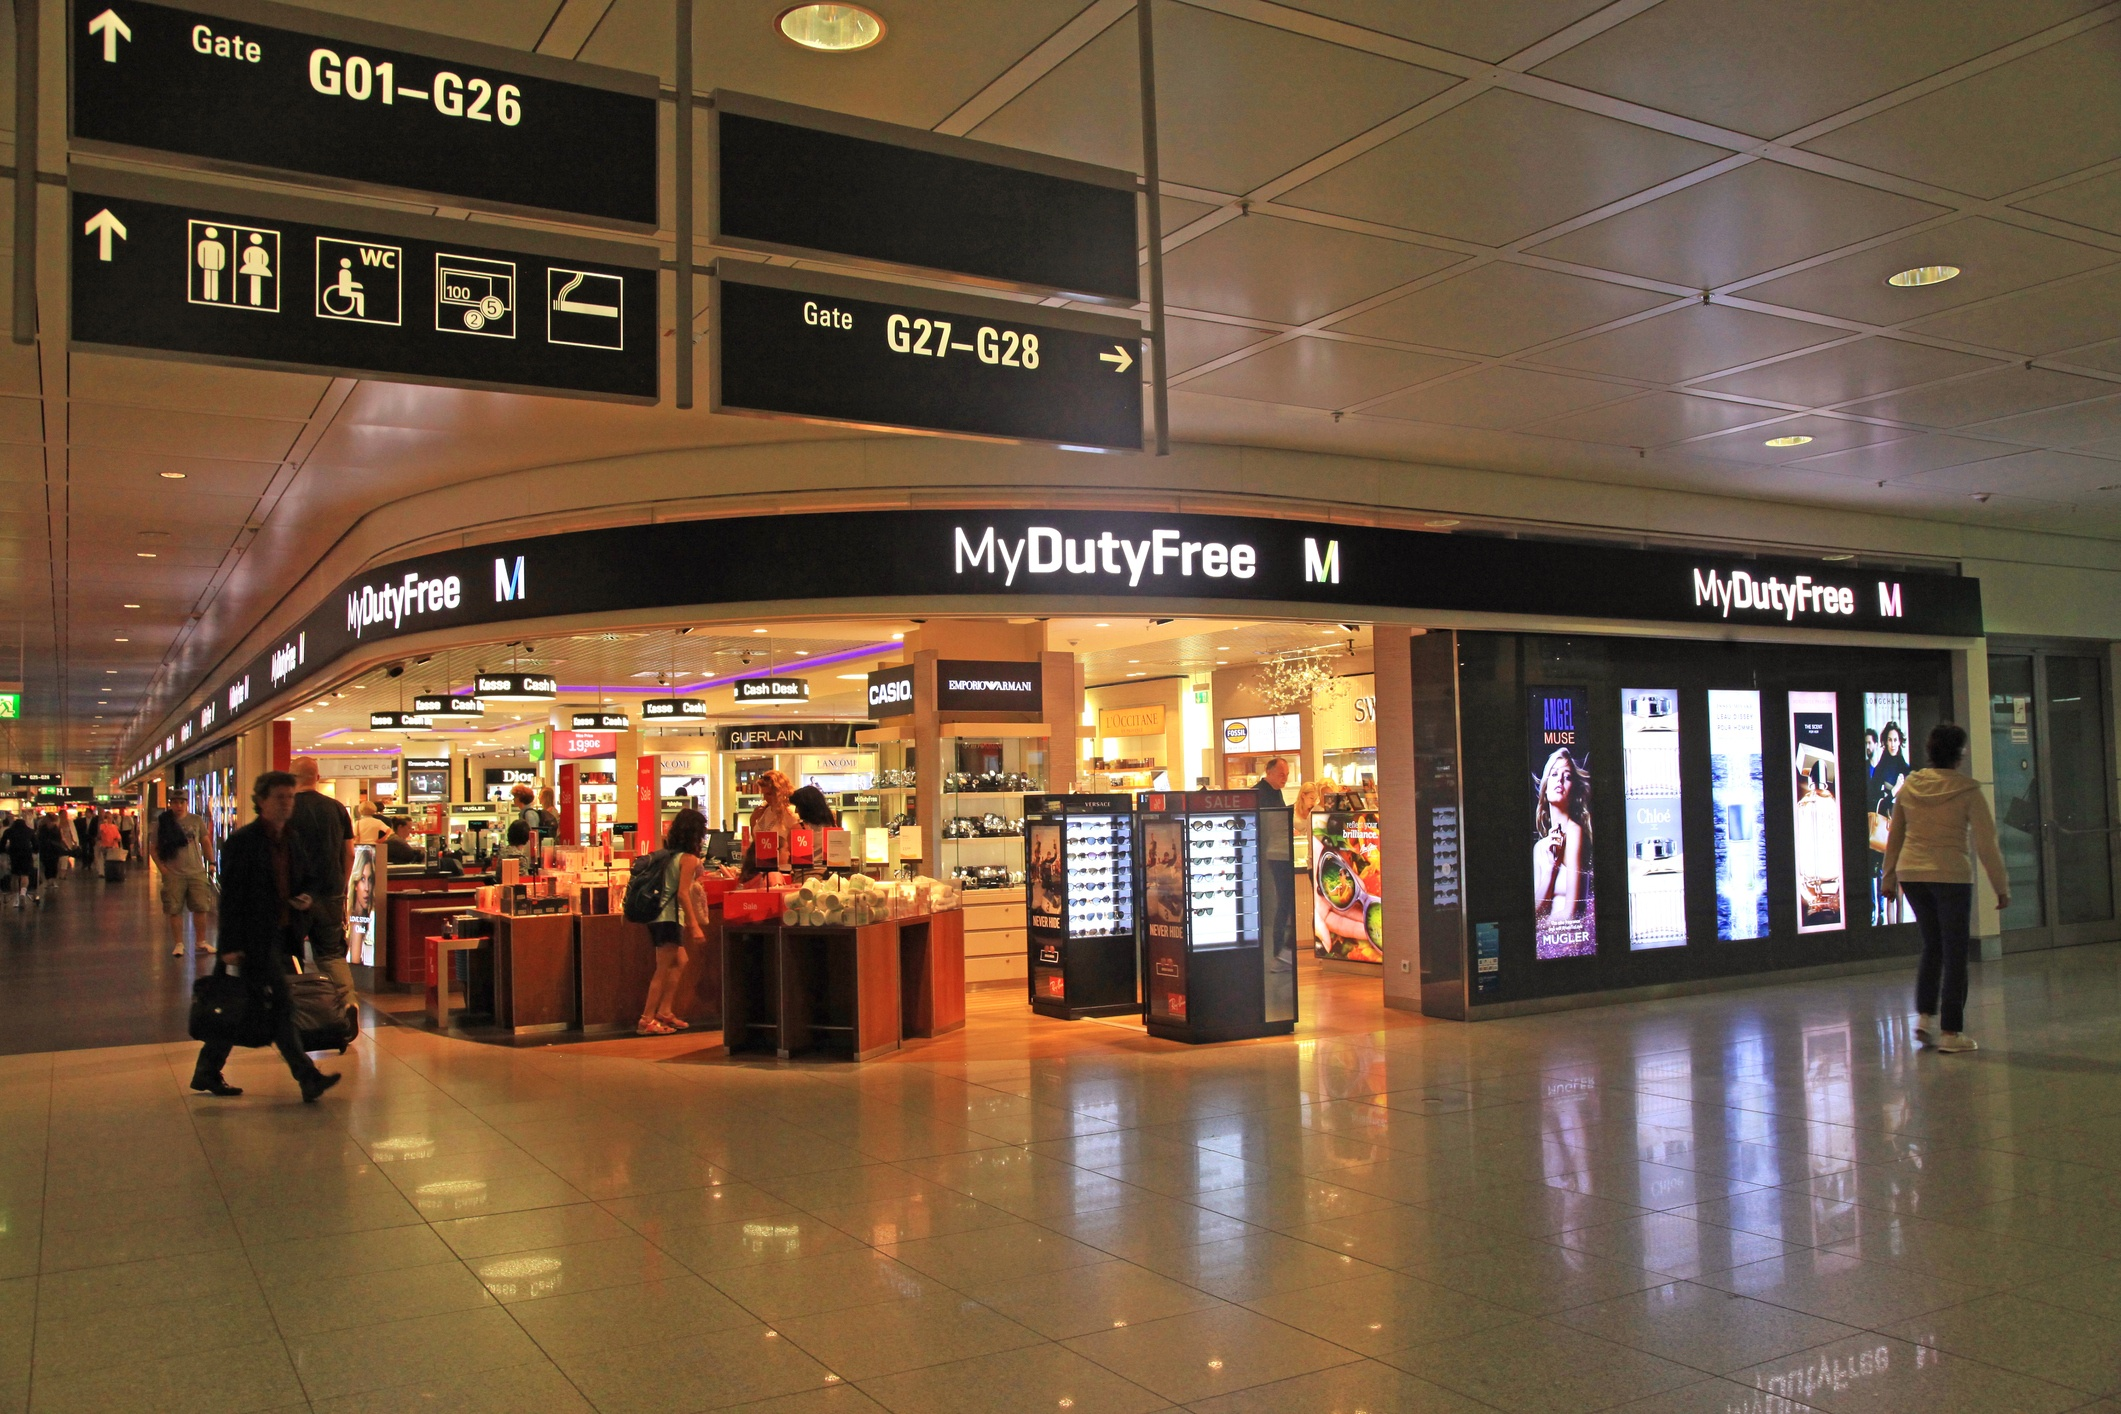 Duty free shop in airport, Munich, Germany.